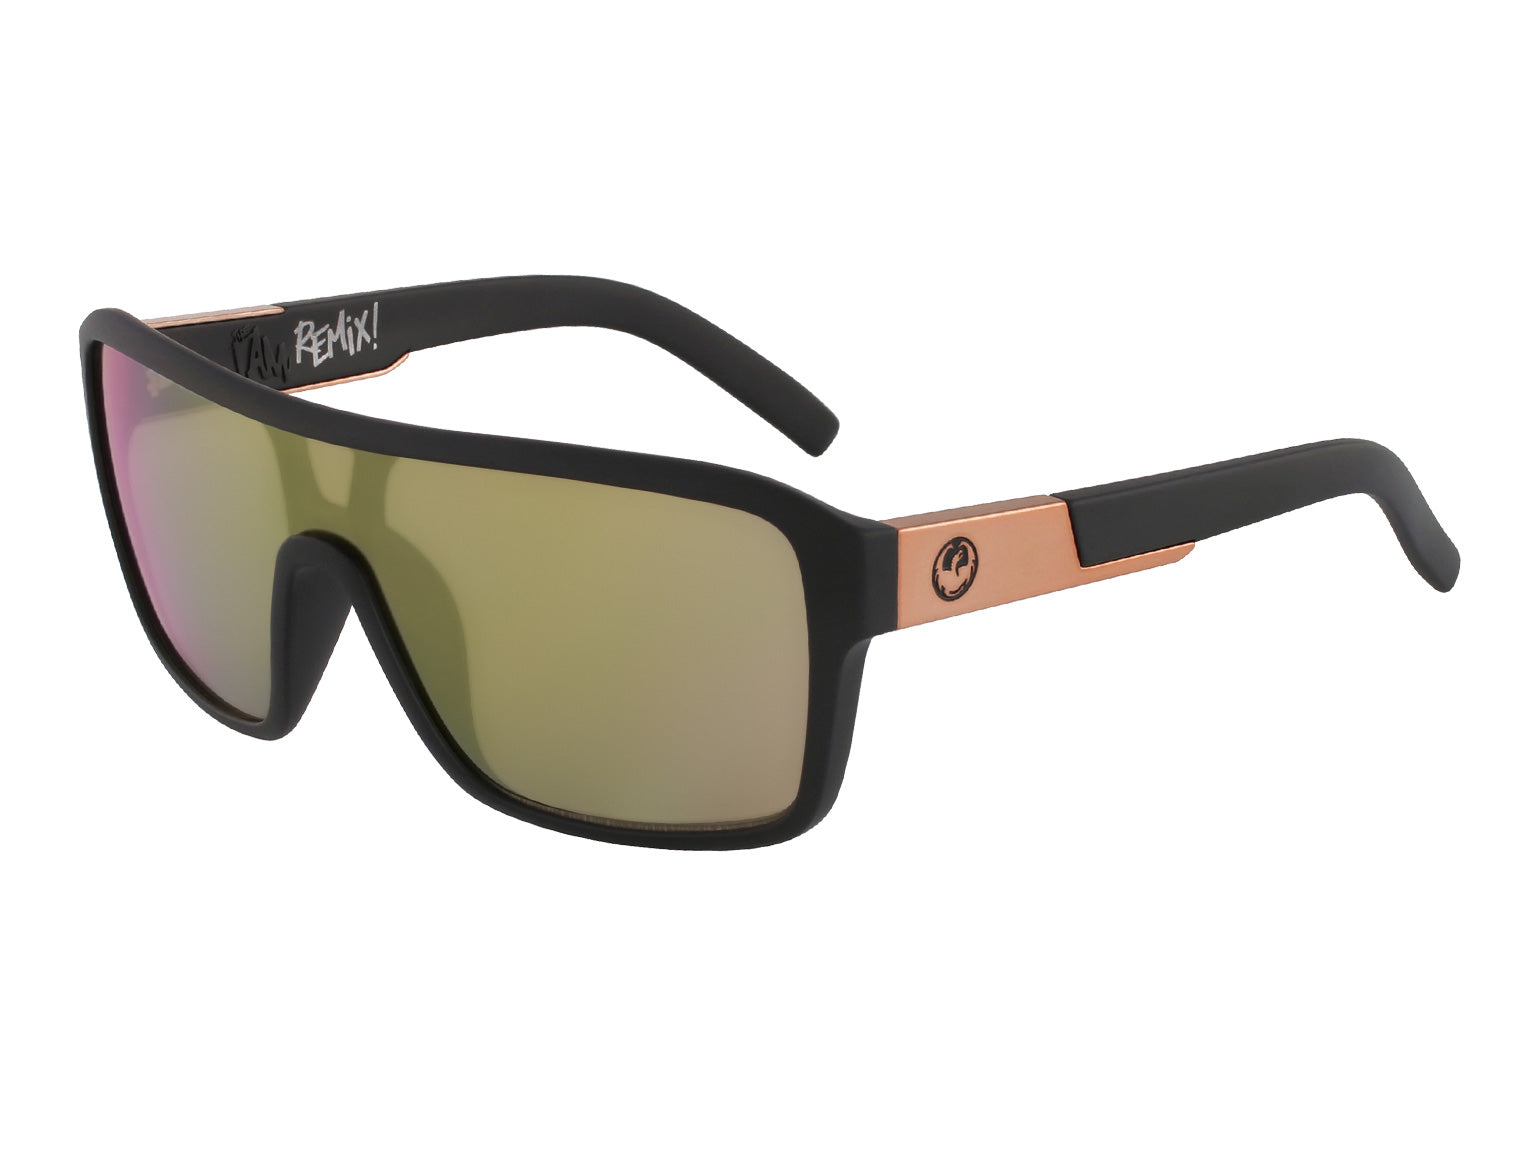 REMIX - Matte Black ; with Lumalens Rose Gold Ionized Lens